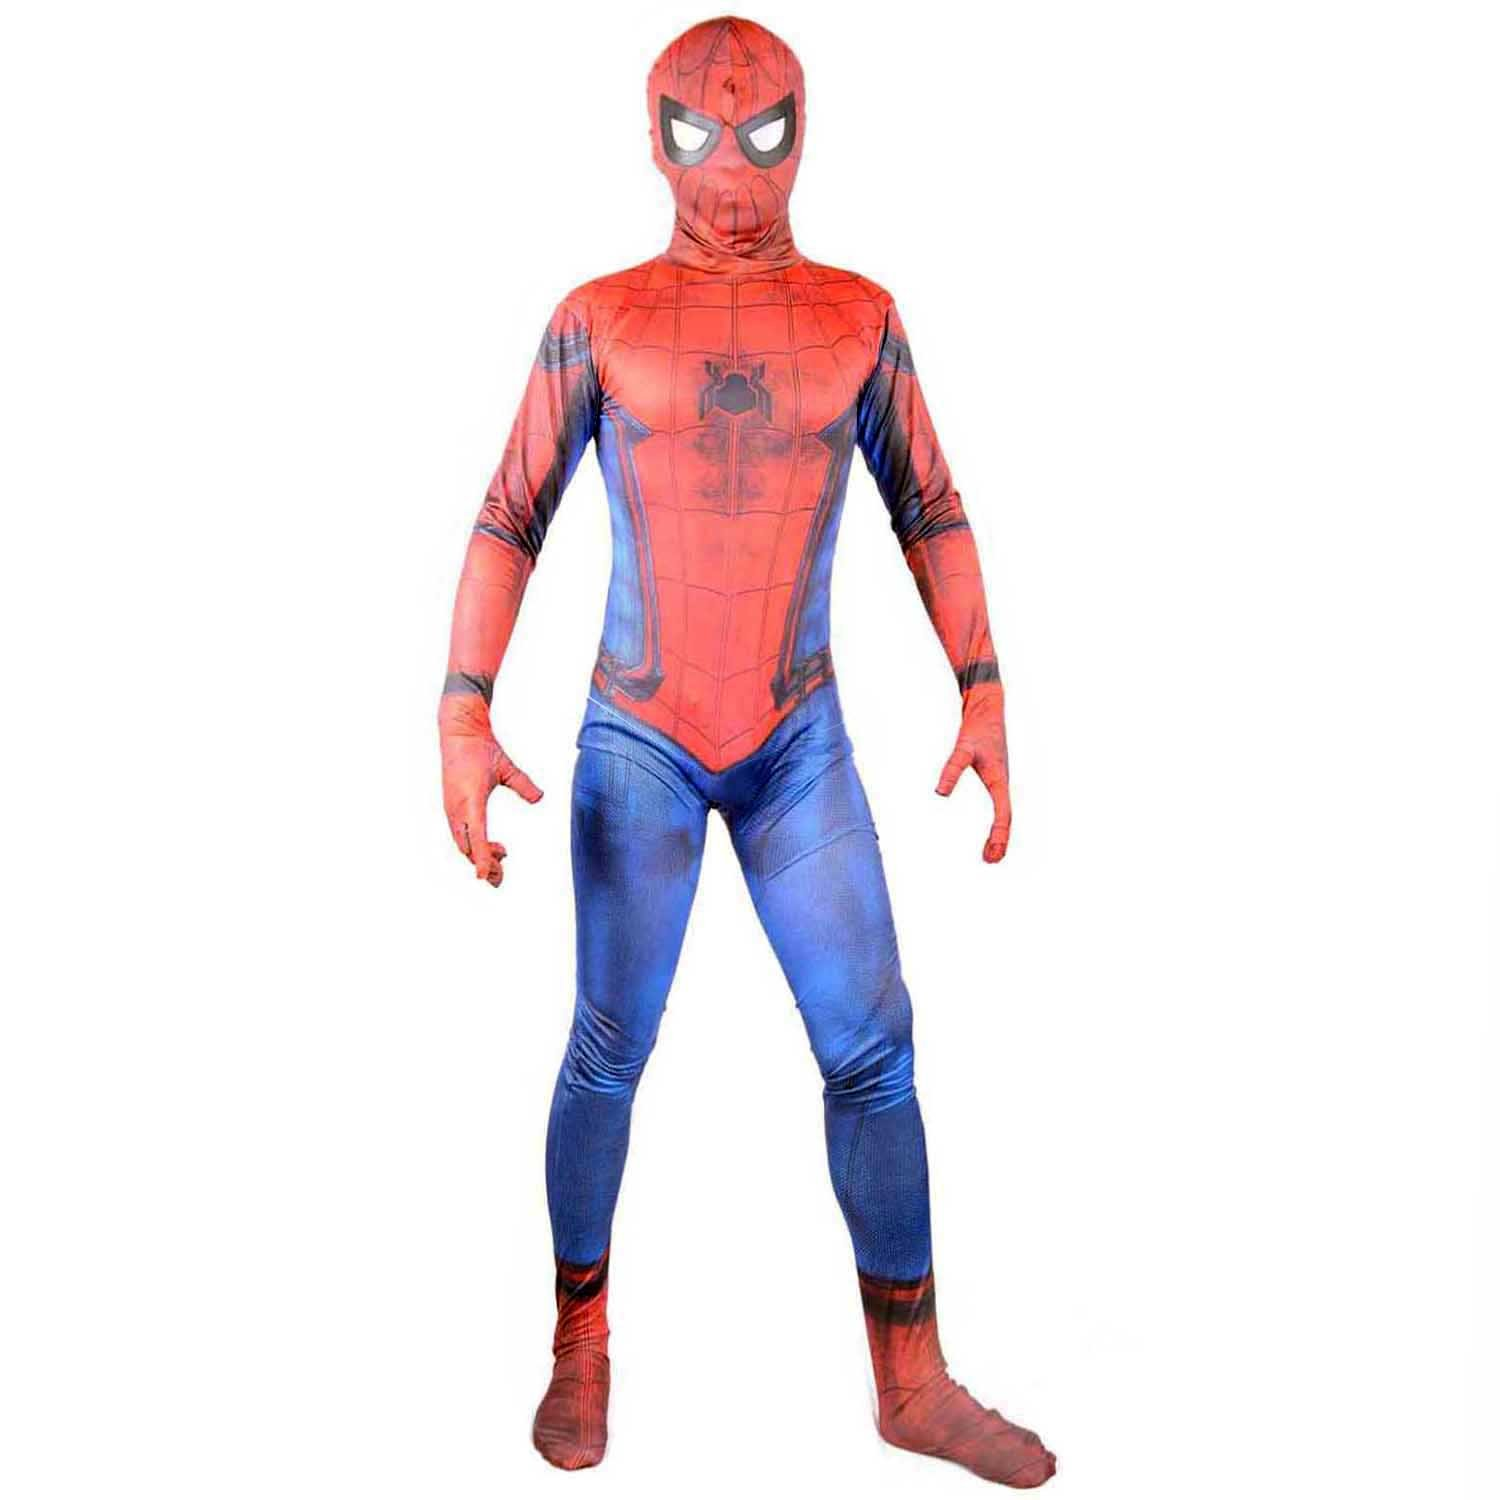 Amazon.com 2017 New Justice Spider Man Suit Boys Cosplay Halloween Costume Kids Clothing  sc 1 st  Amazon.com & Amazon.com: 2017 New Justice Spider Man Suit Boys Cosplay Halloween ...